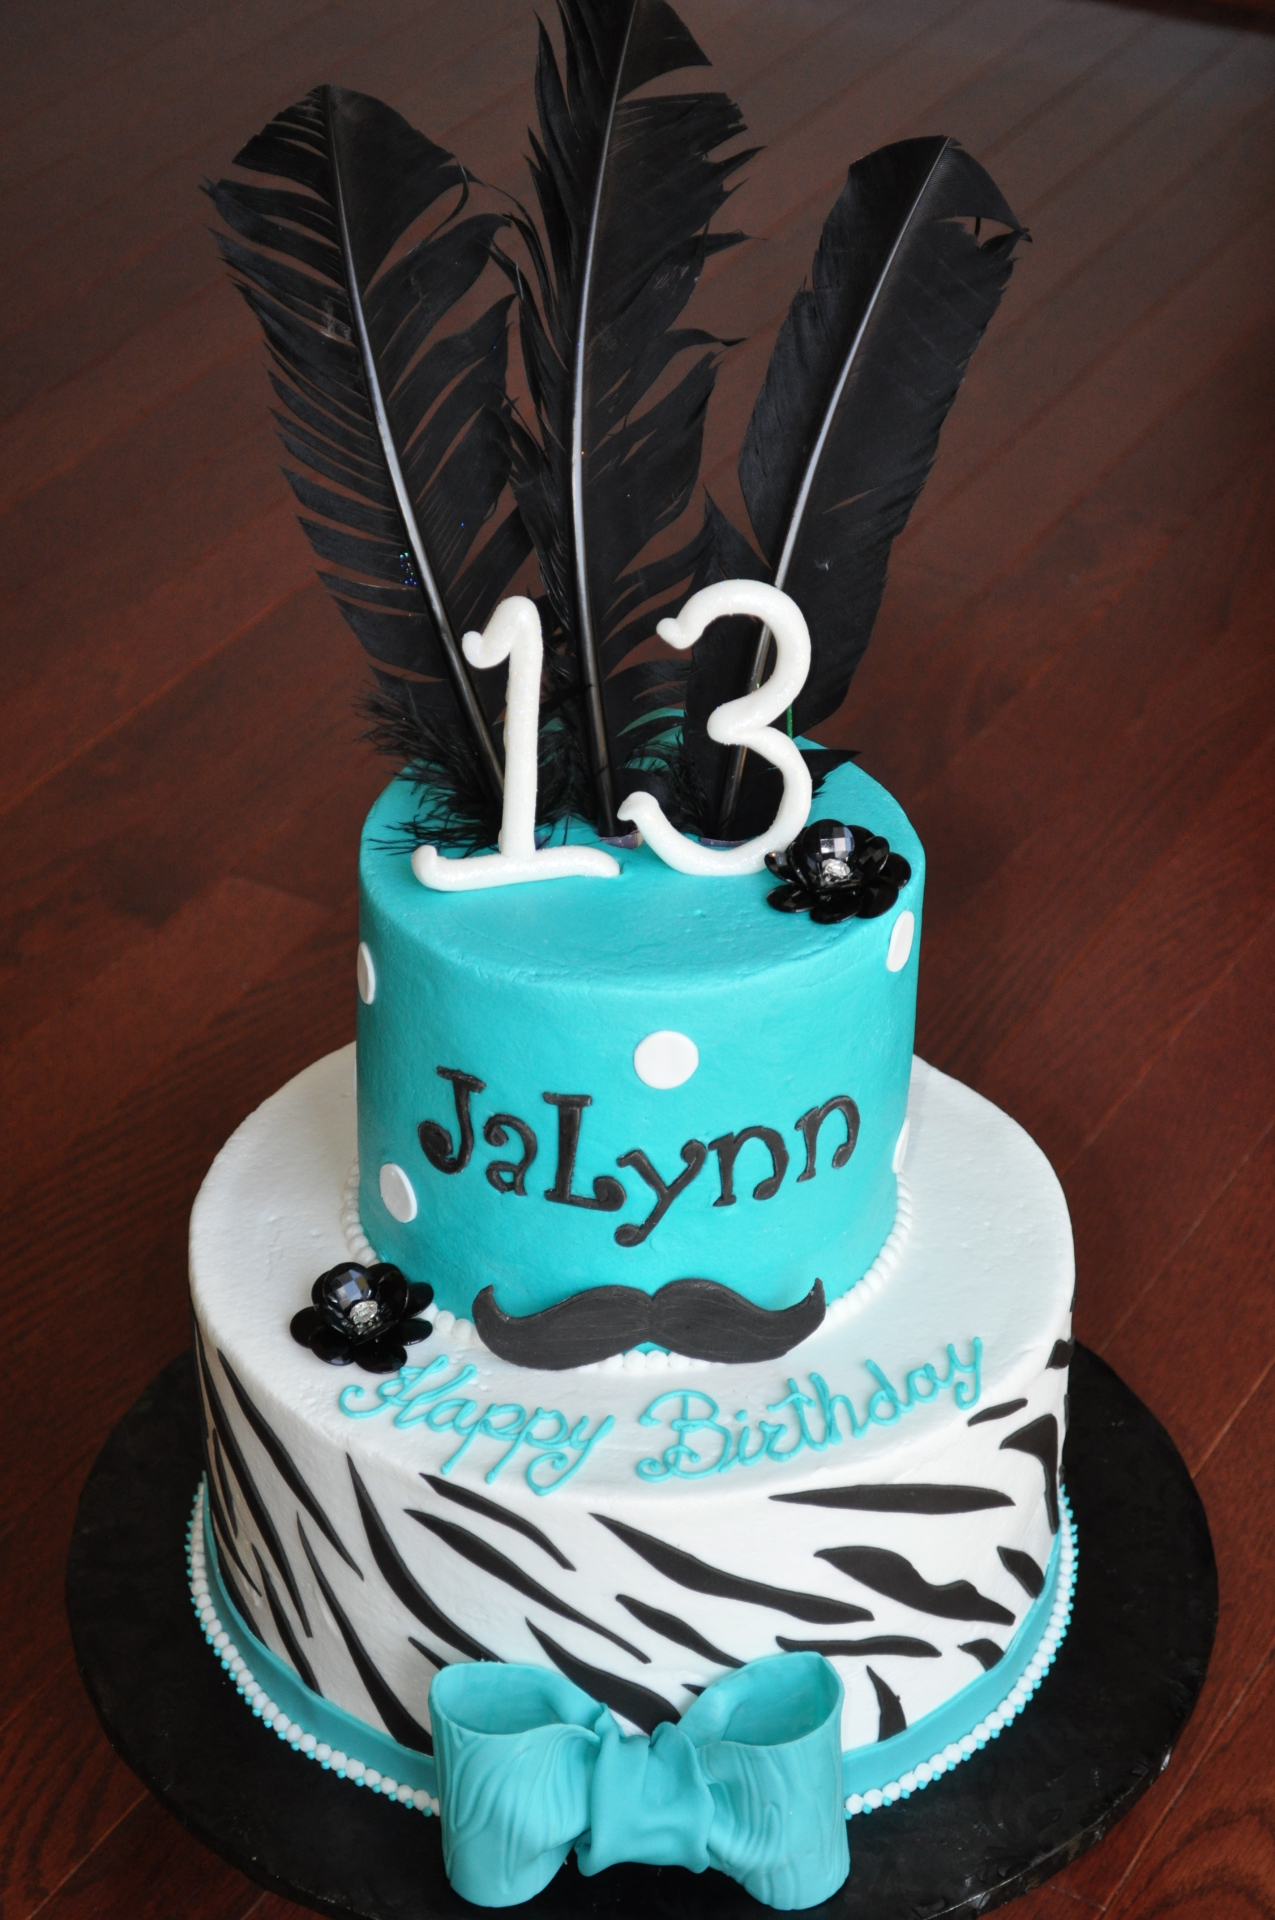 Zebra stripes 13th birthday cake, mustache theme cake